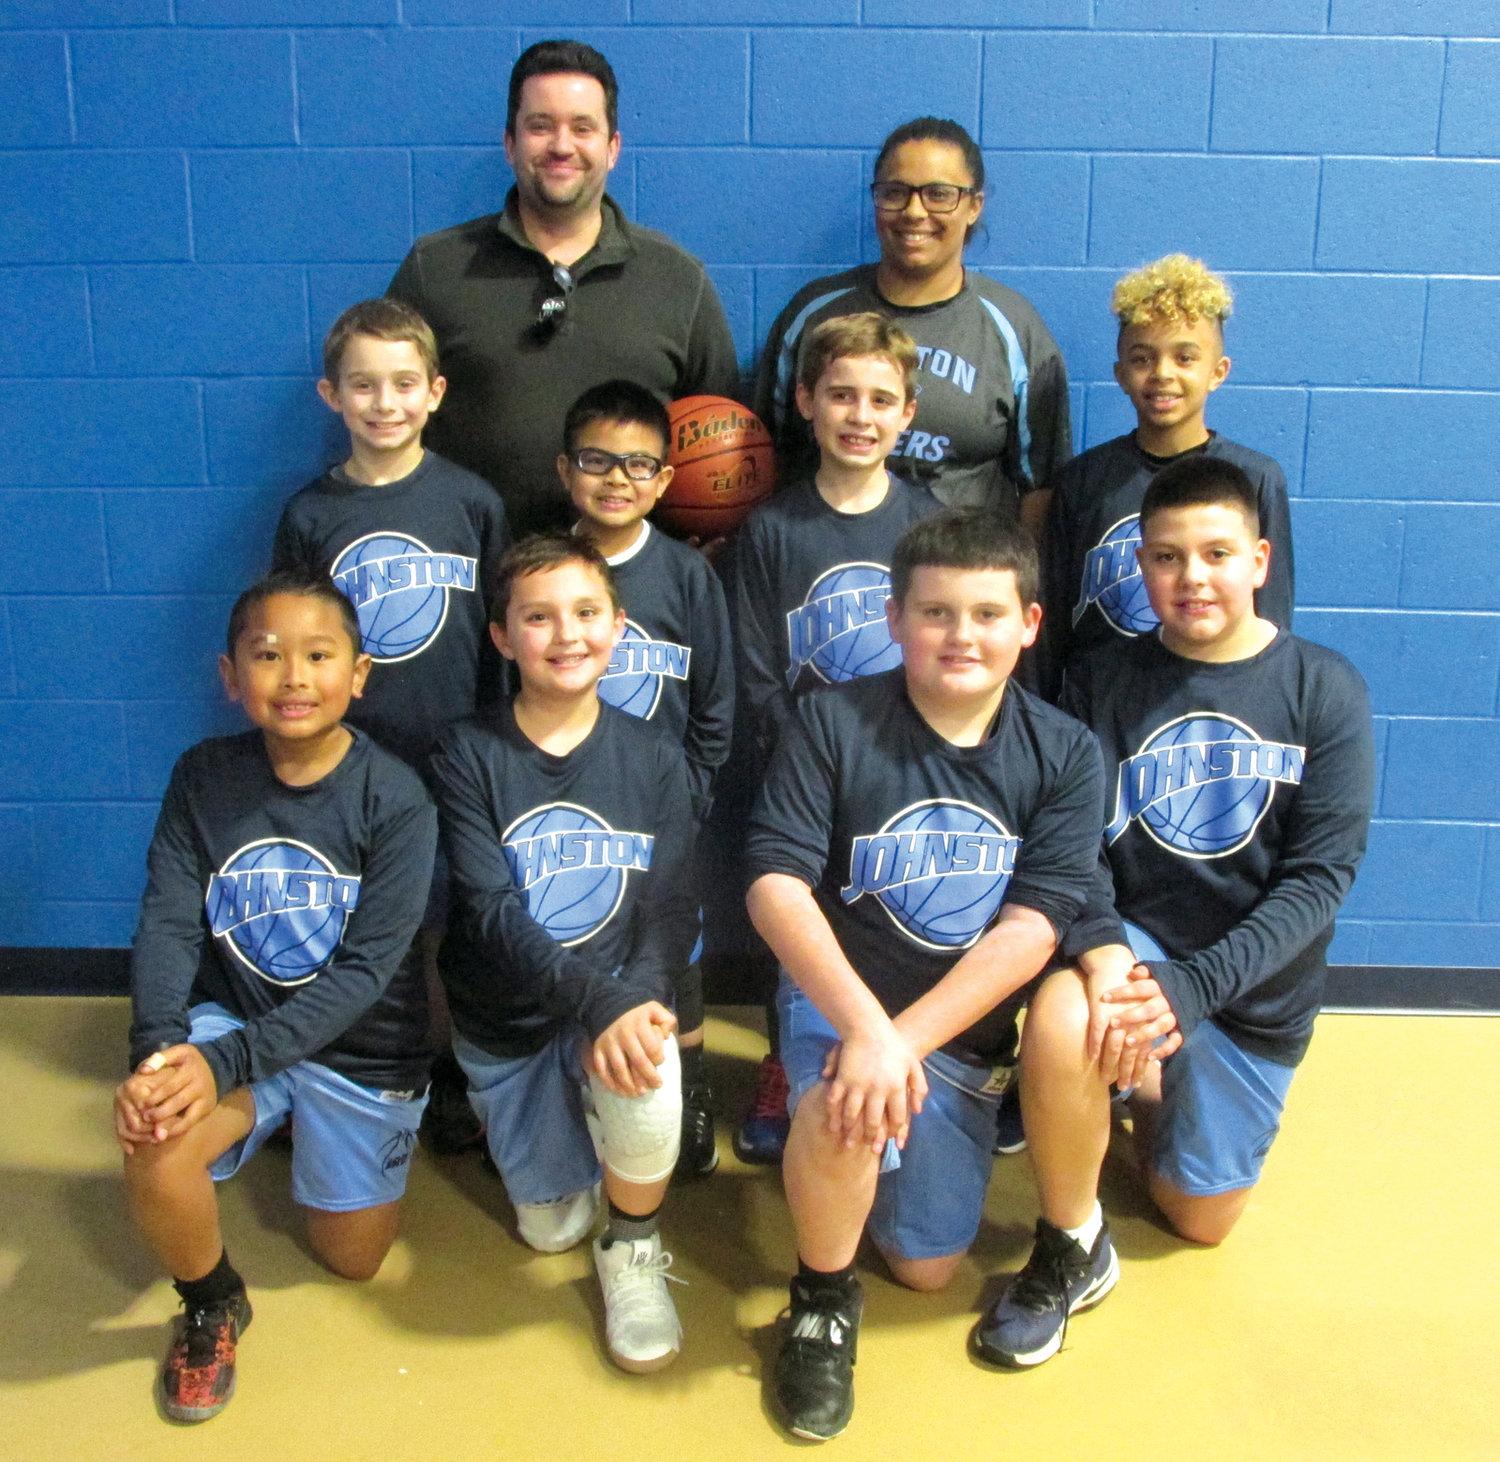 GIANNA'S GANG: Johnston's fourth grade level boys' team, which is coached by Gianna Mazzulla and her assistant Marc Waterman, includes in front row from left: Kaiden Kue, Ryan Waterman, Jay Spina and Michael Morsilli. Second row: Will Ferrara, Arthur Men, Logan Finelli and Jaziah Mazzulla.